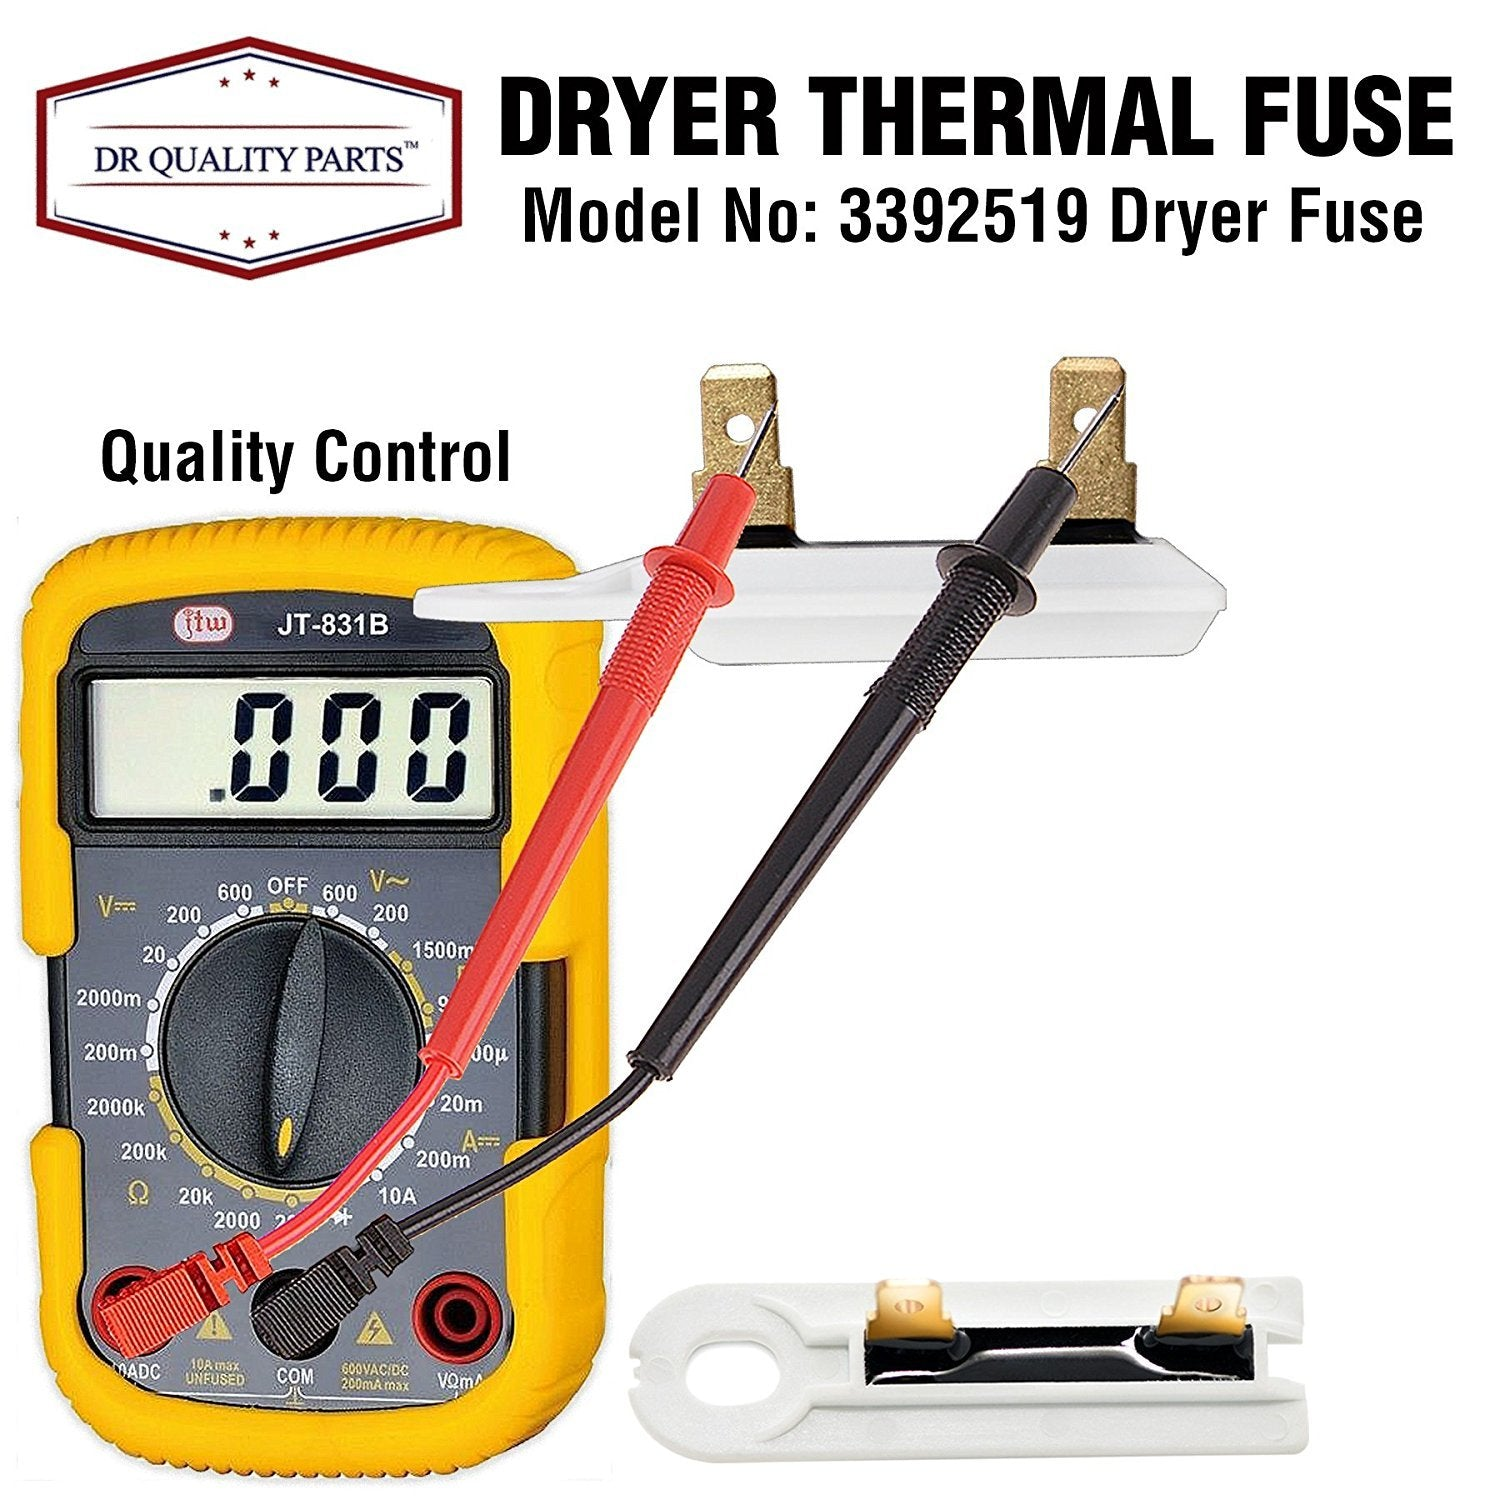 Replacement Part for 3392519 Dryer Thermal Fuse DR Quality Parts